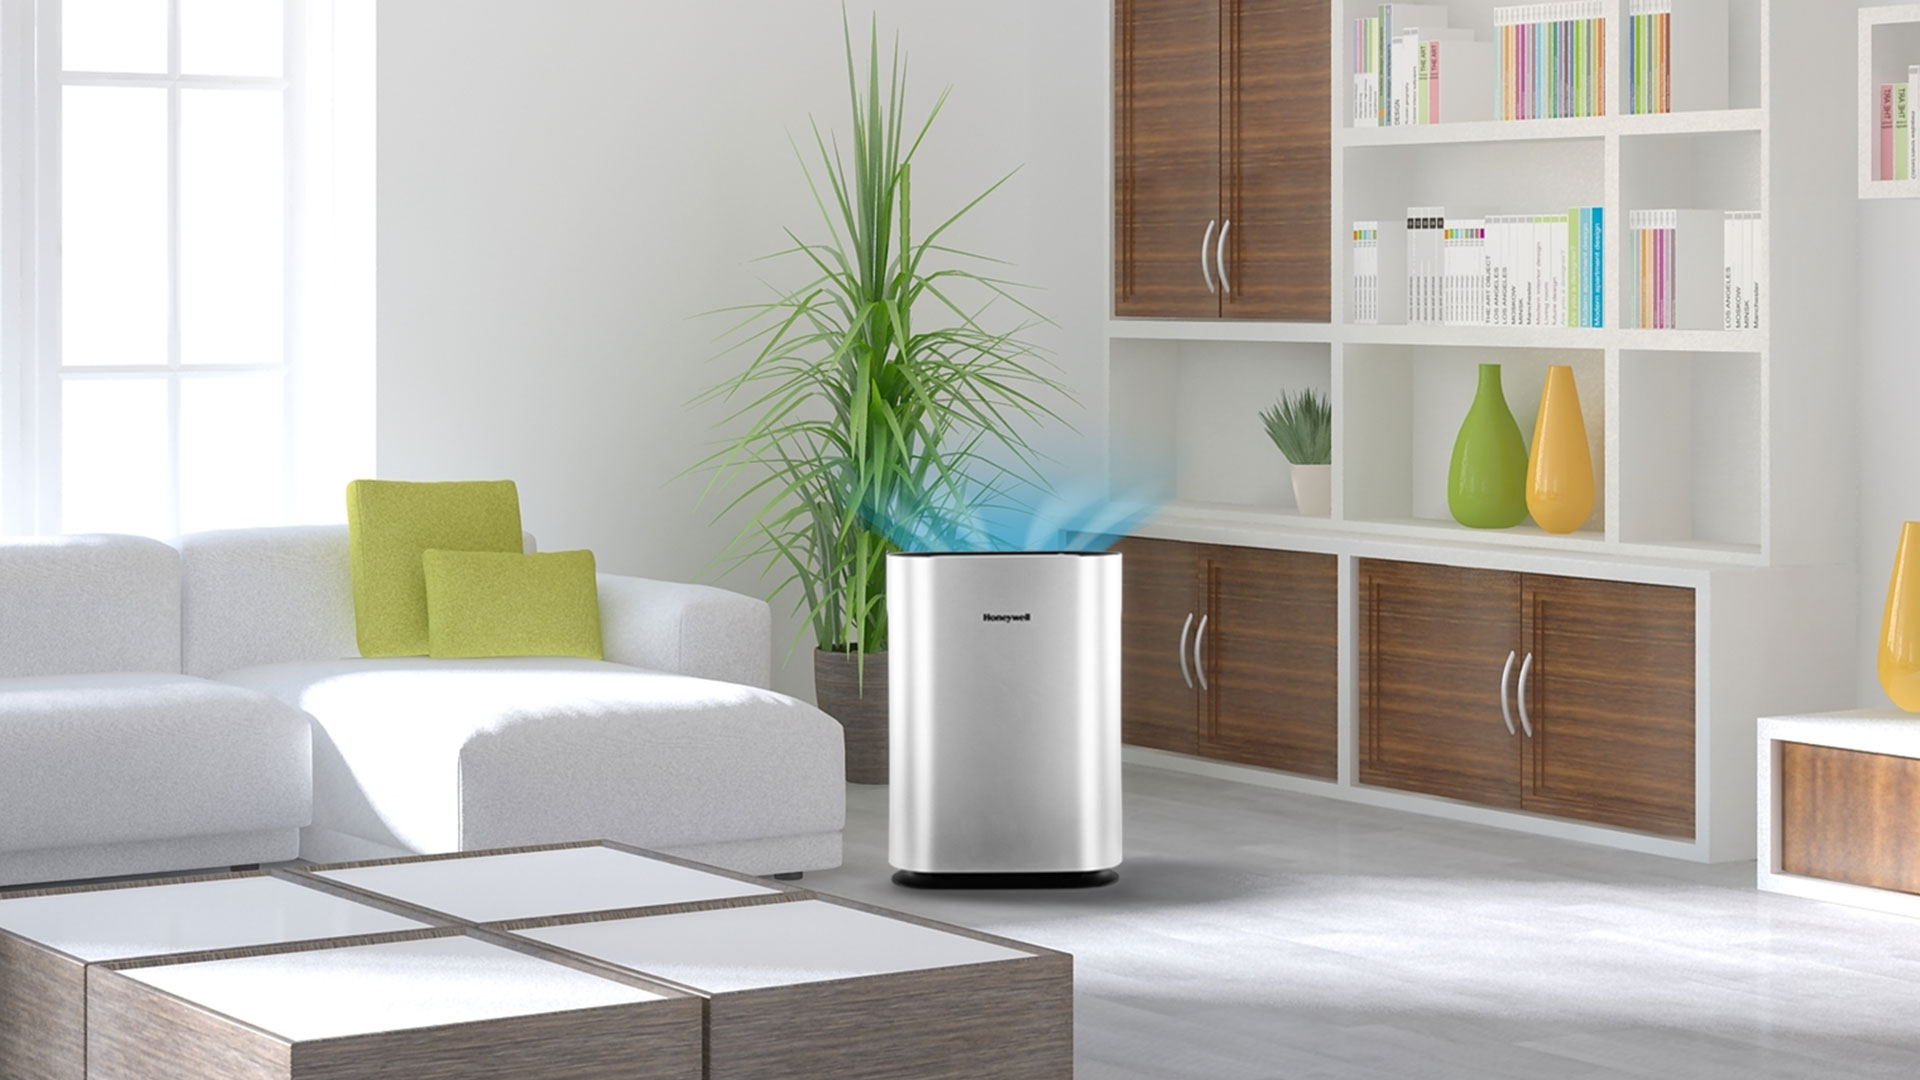 5 best air purifiers in india the affordable yet effective cleansers. Black Bedroom Furniture Sets. Home Design Ideas